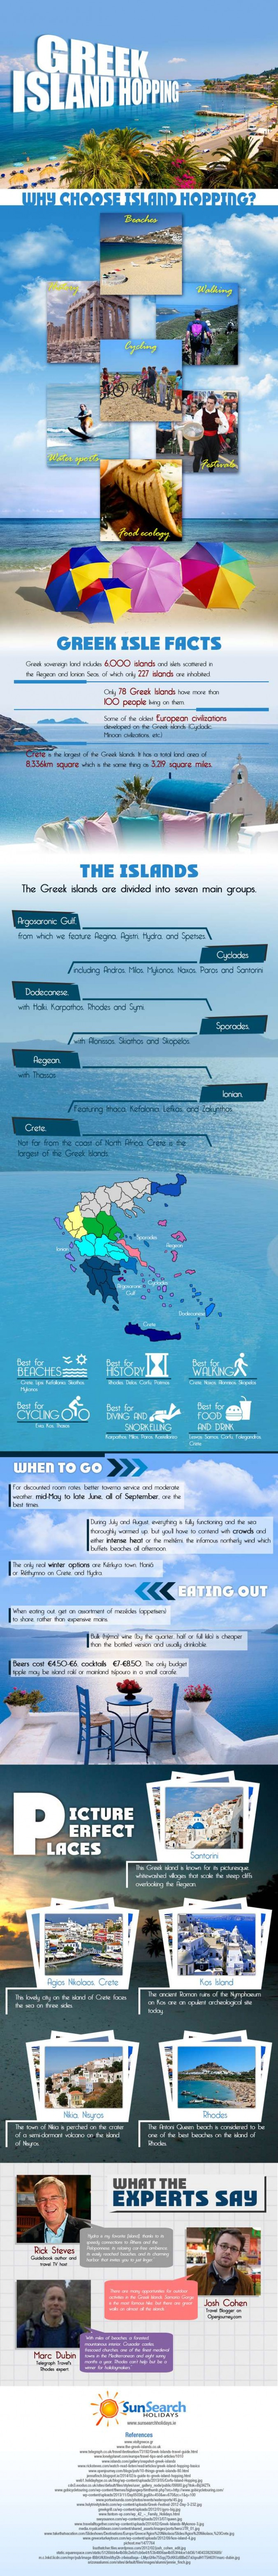 Sunsearch Guide to the Greek Islands